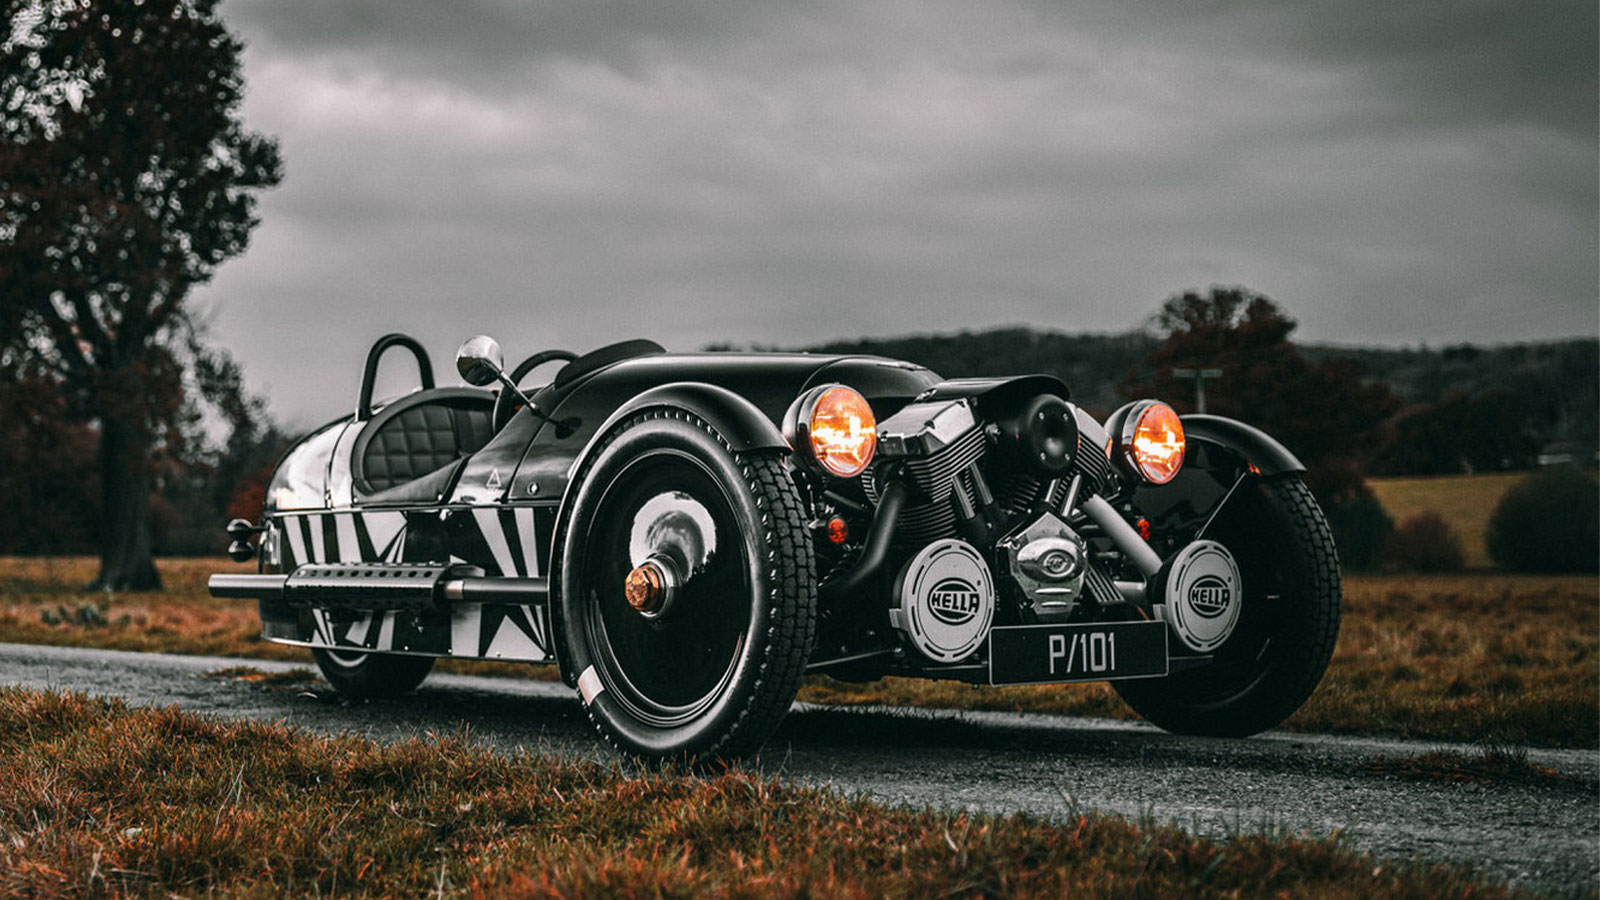 Morgan 3 Wheeler P101 Limited Edition